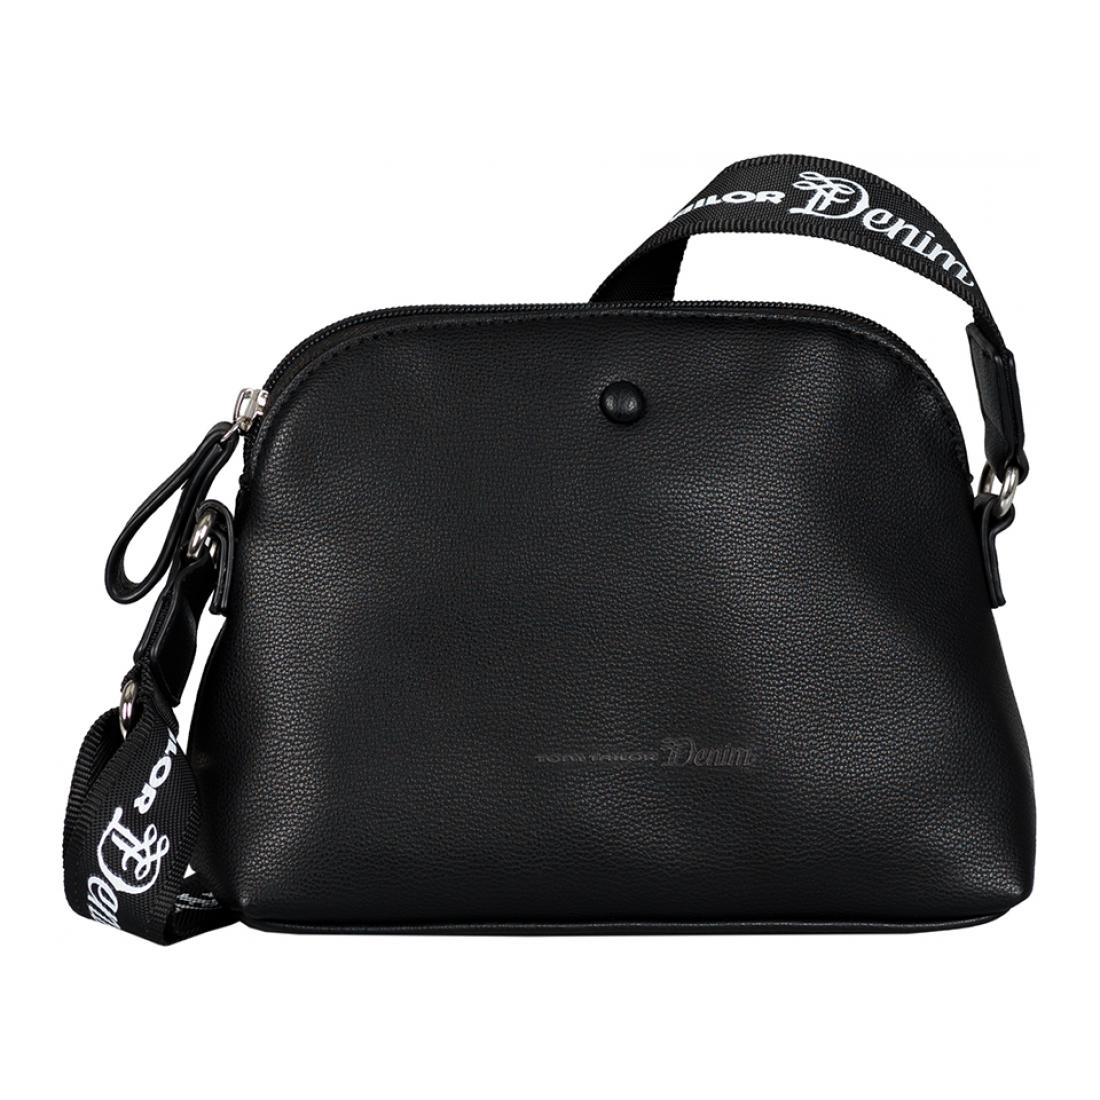 Tom Tailor Tasche MAIA Cross bag